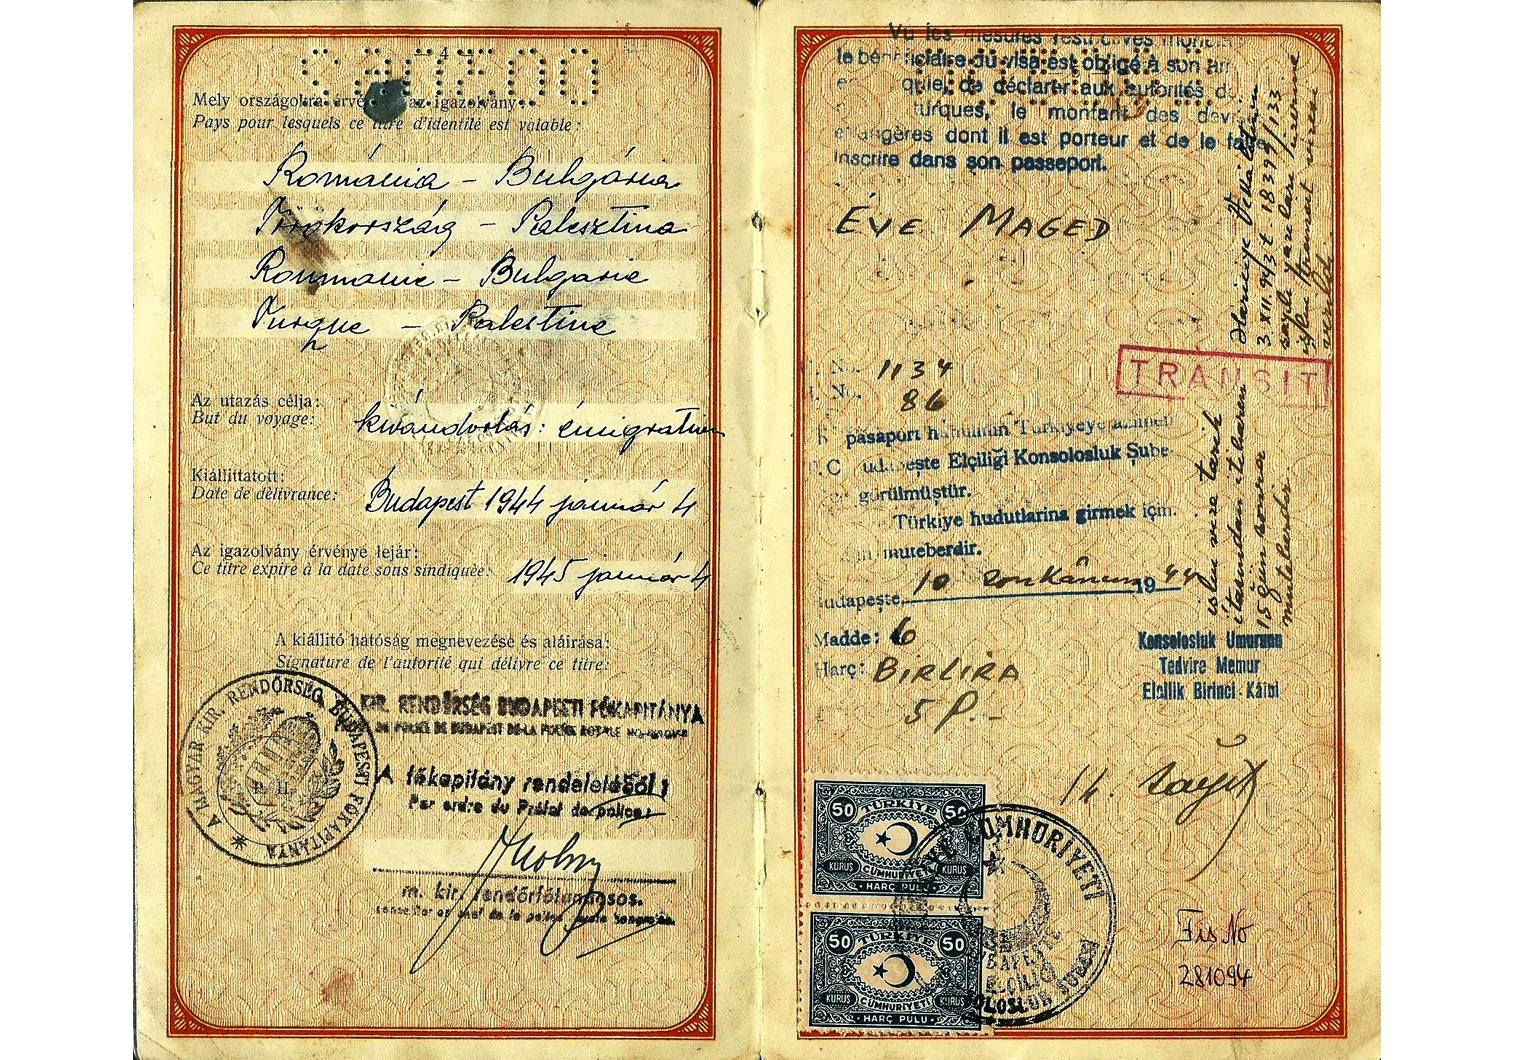 1944 Hungarian passport